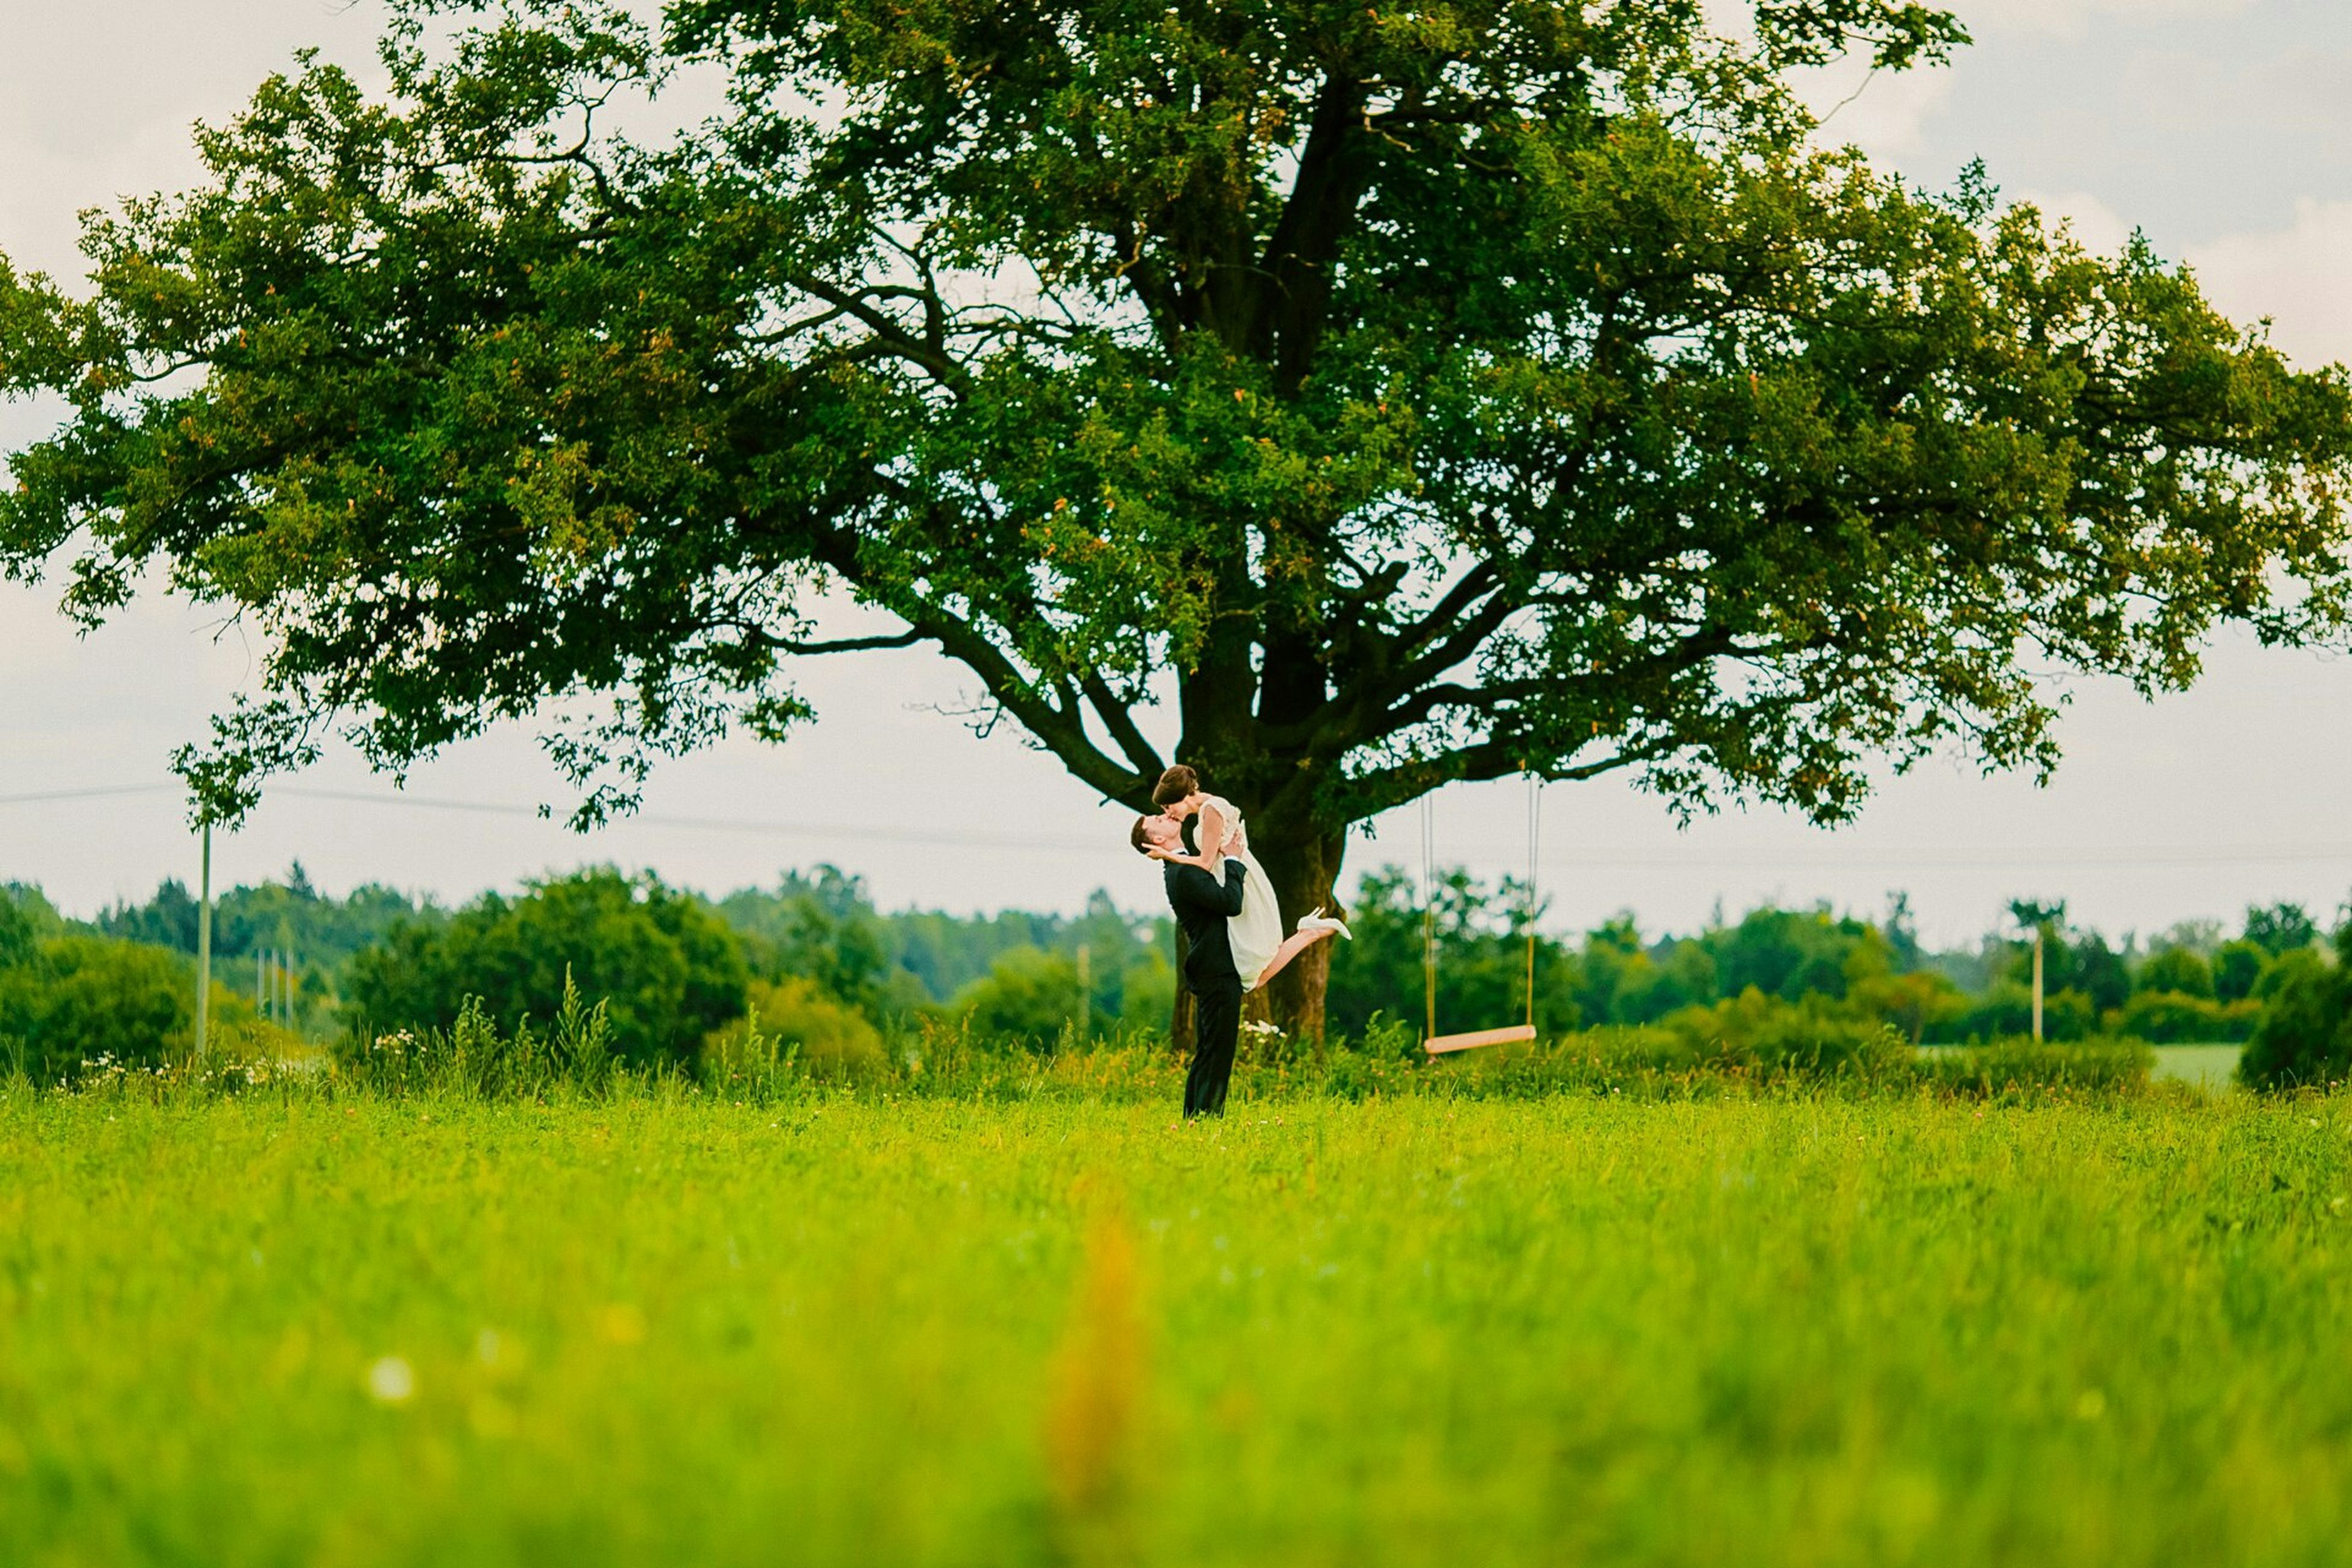 grass, field, lifestyles, full length, tree, grassy, green color, leisure activity, growth, standing, casual clothing, landscape, nature, tranquility, sky, tranquil scene, plant, young adult